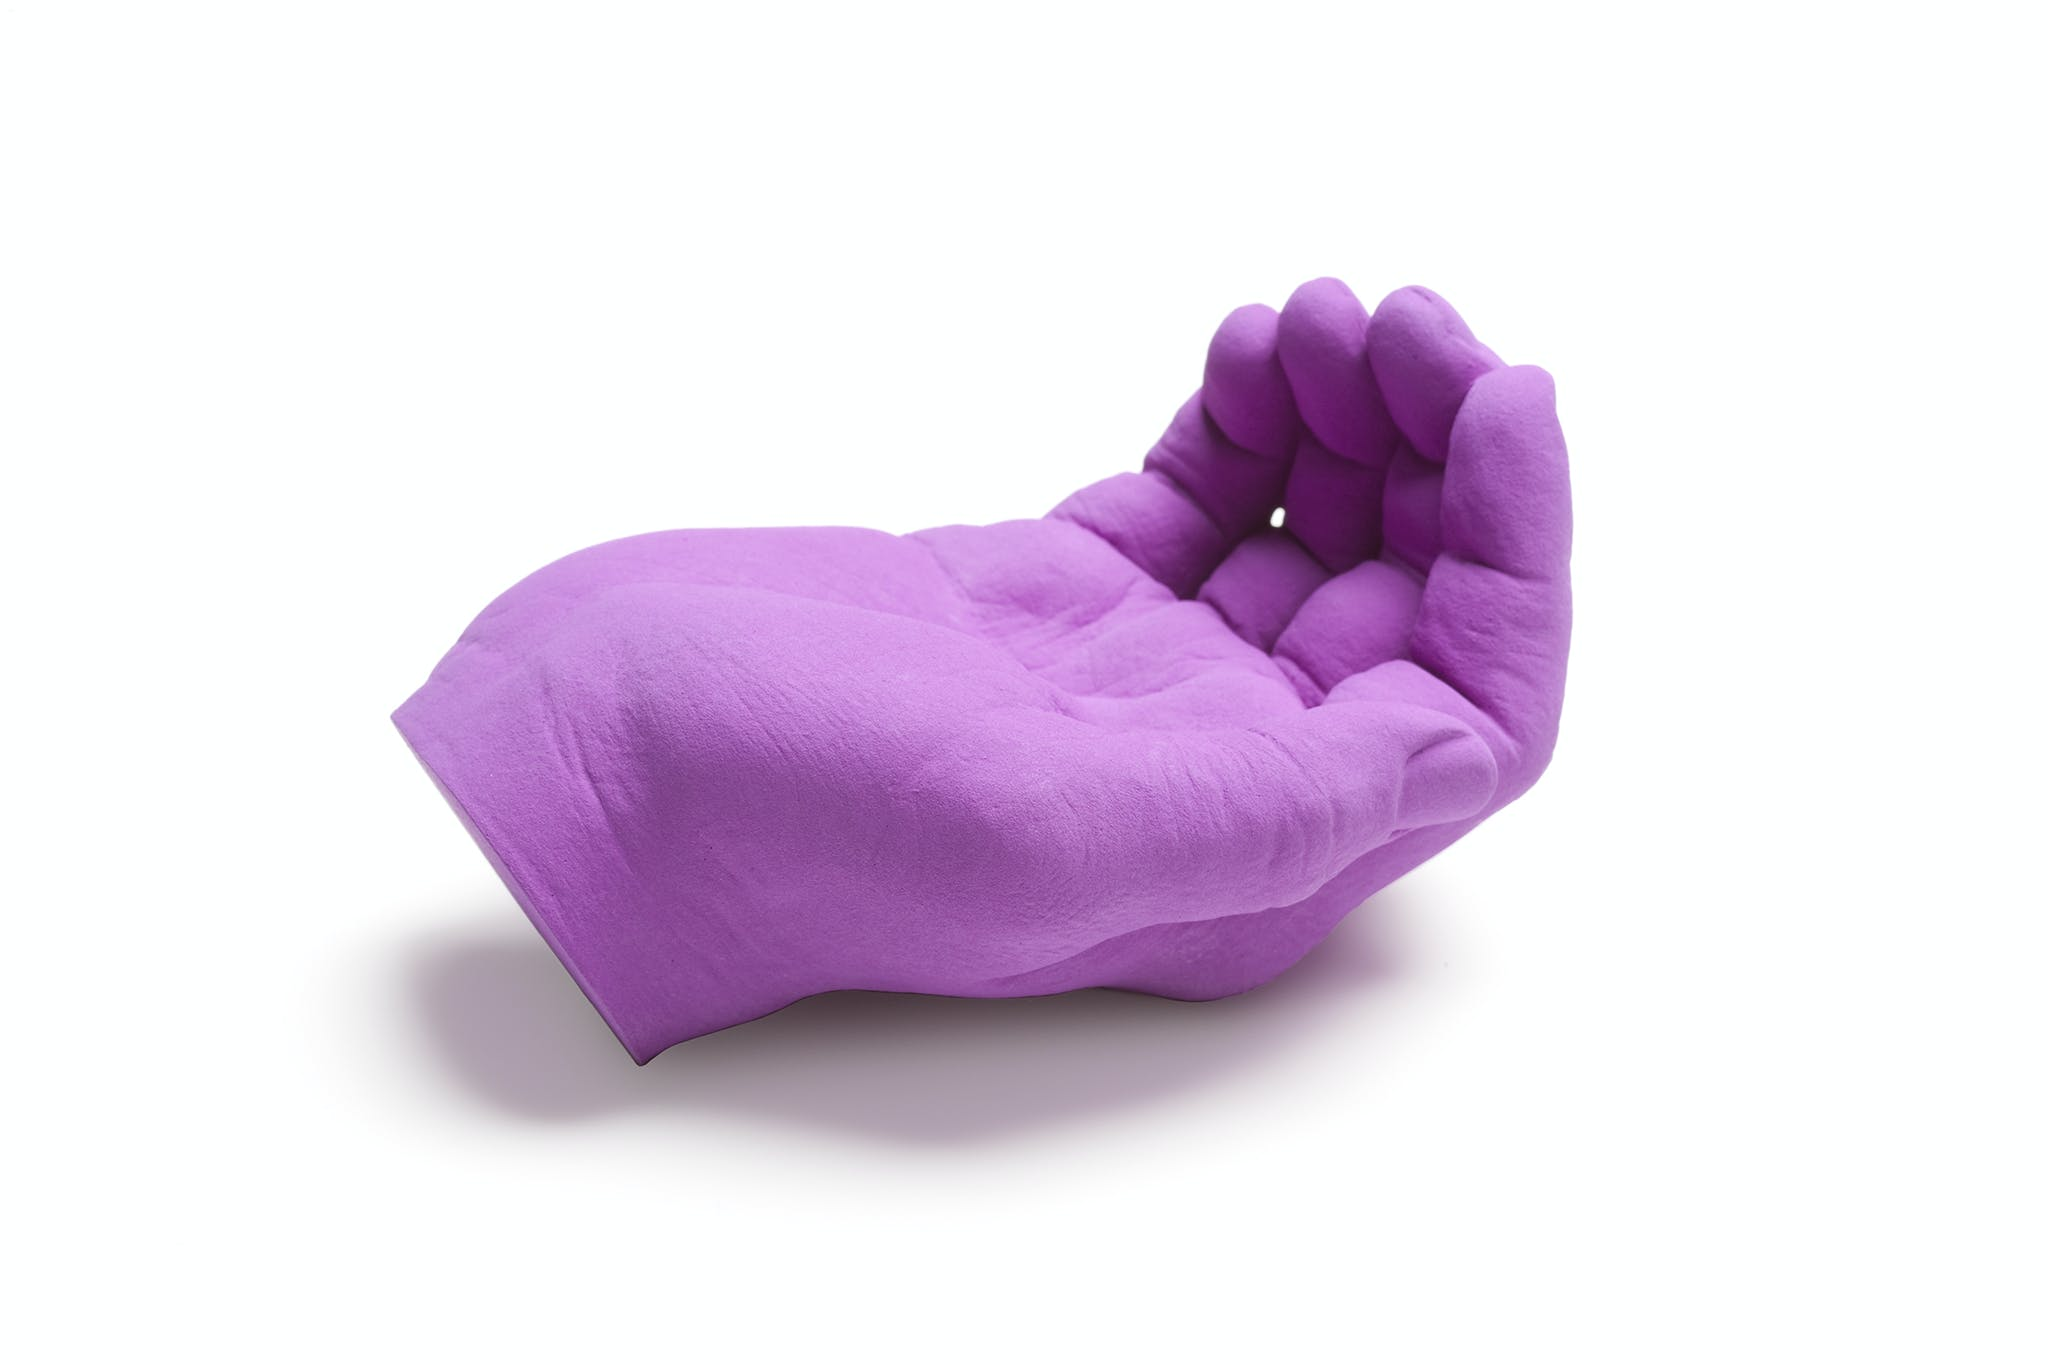 purple hand sculpture, Katharina Fritsch